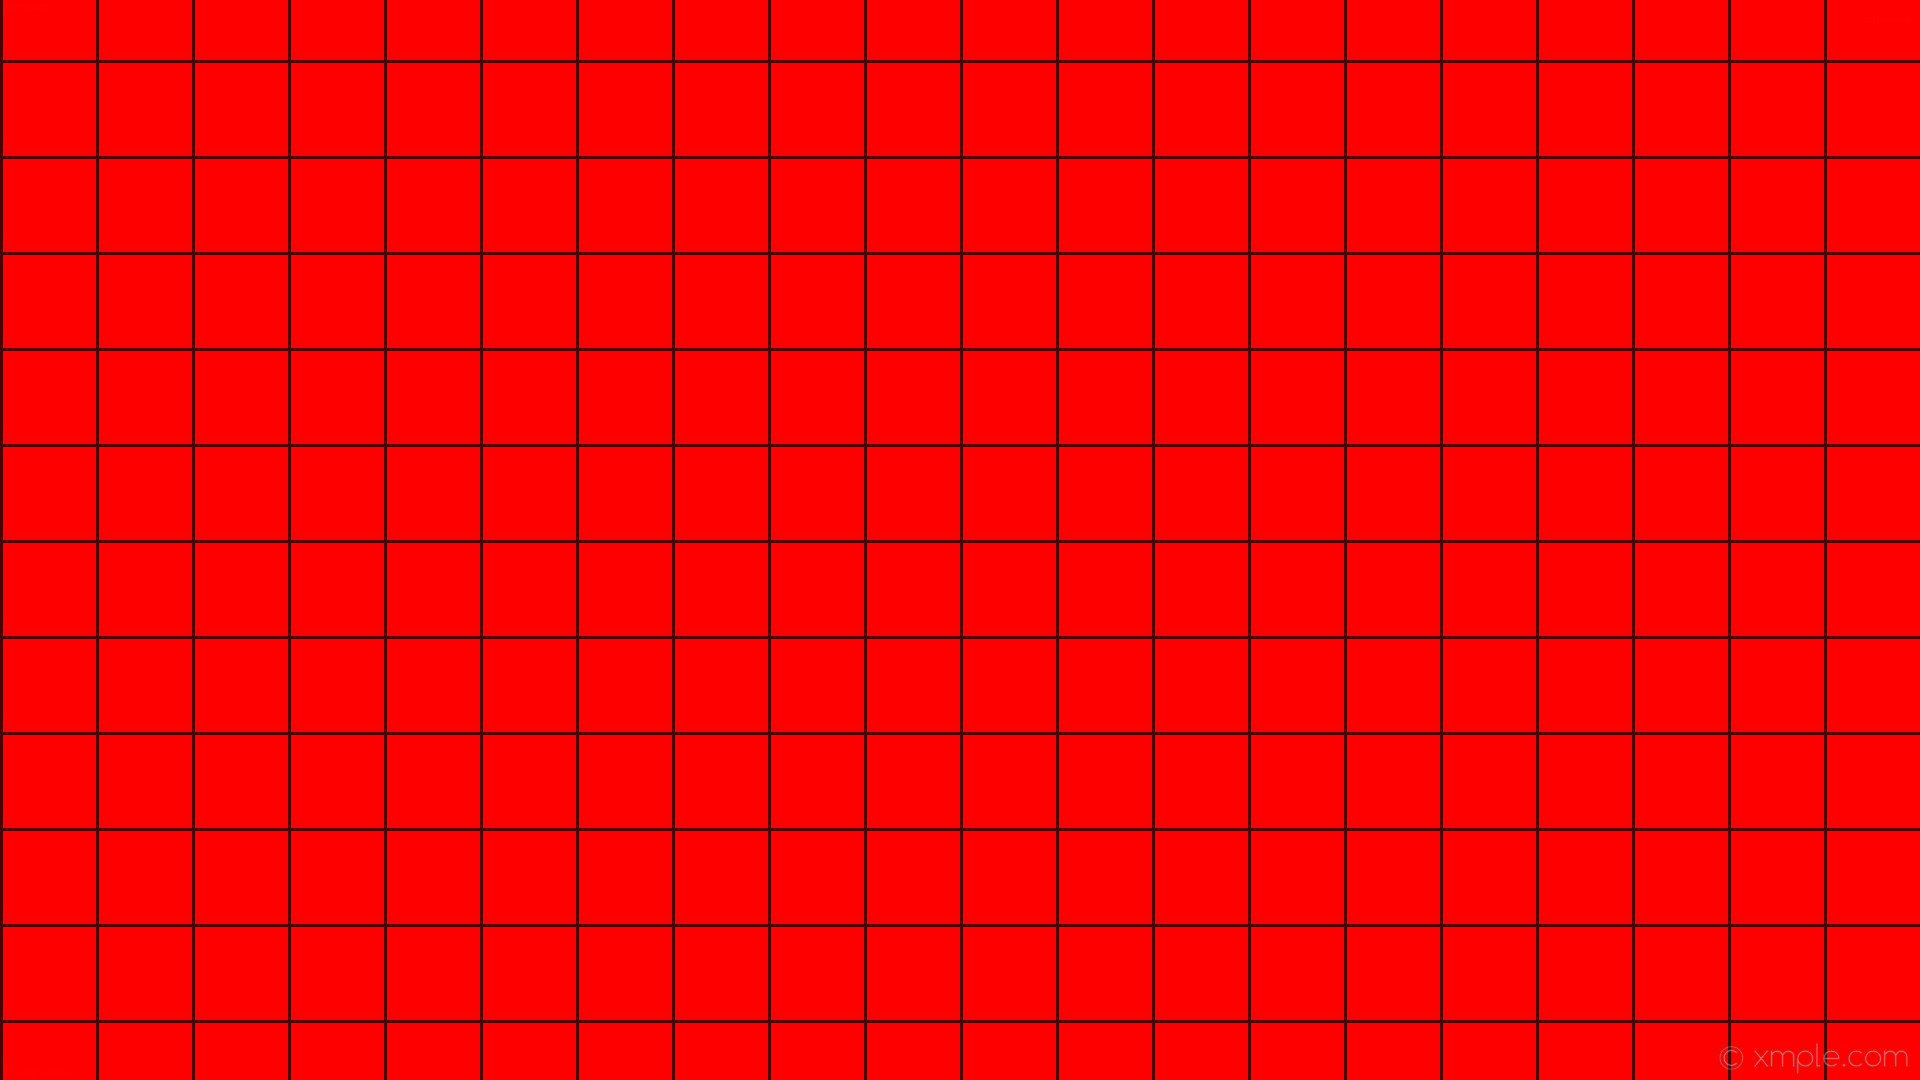 wallpaper graph paper red grid black #ff0000 #000000 0° 3px 96px